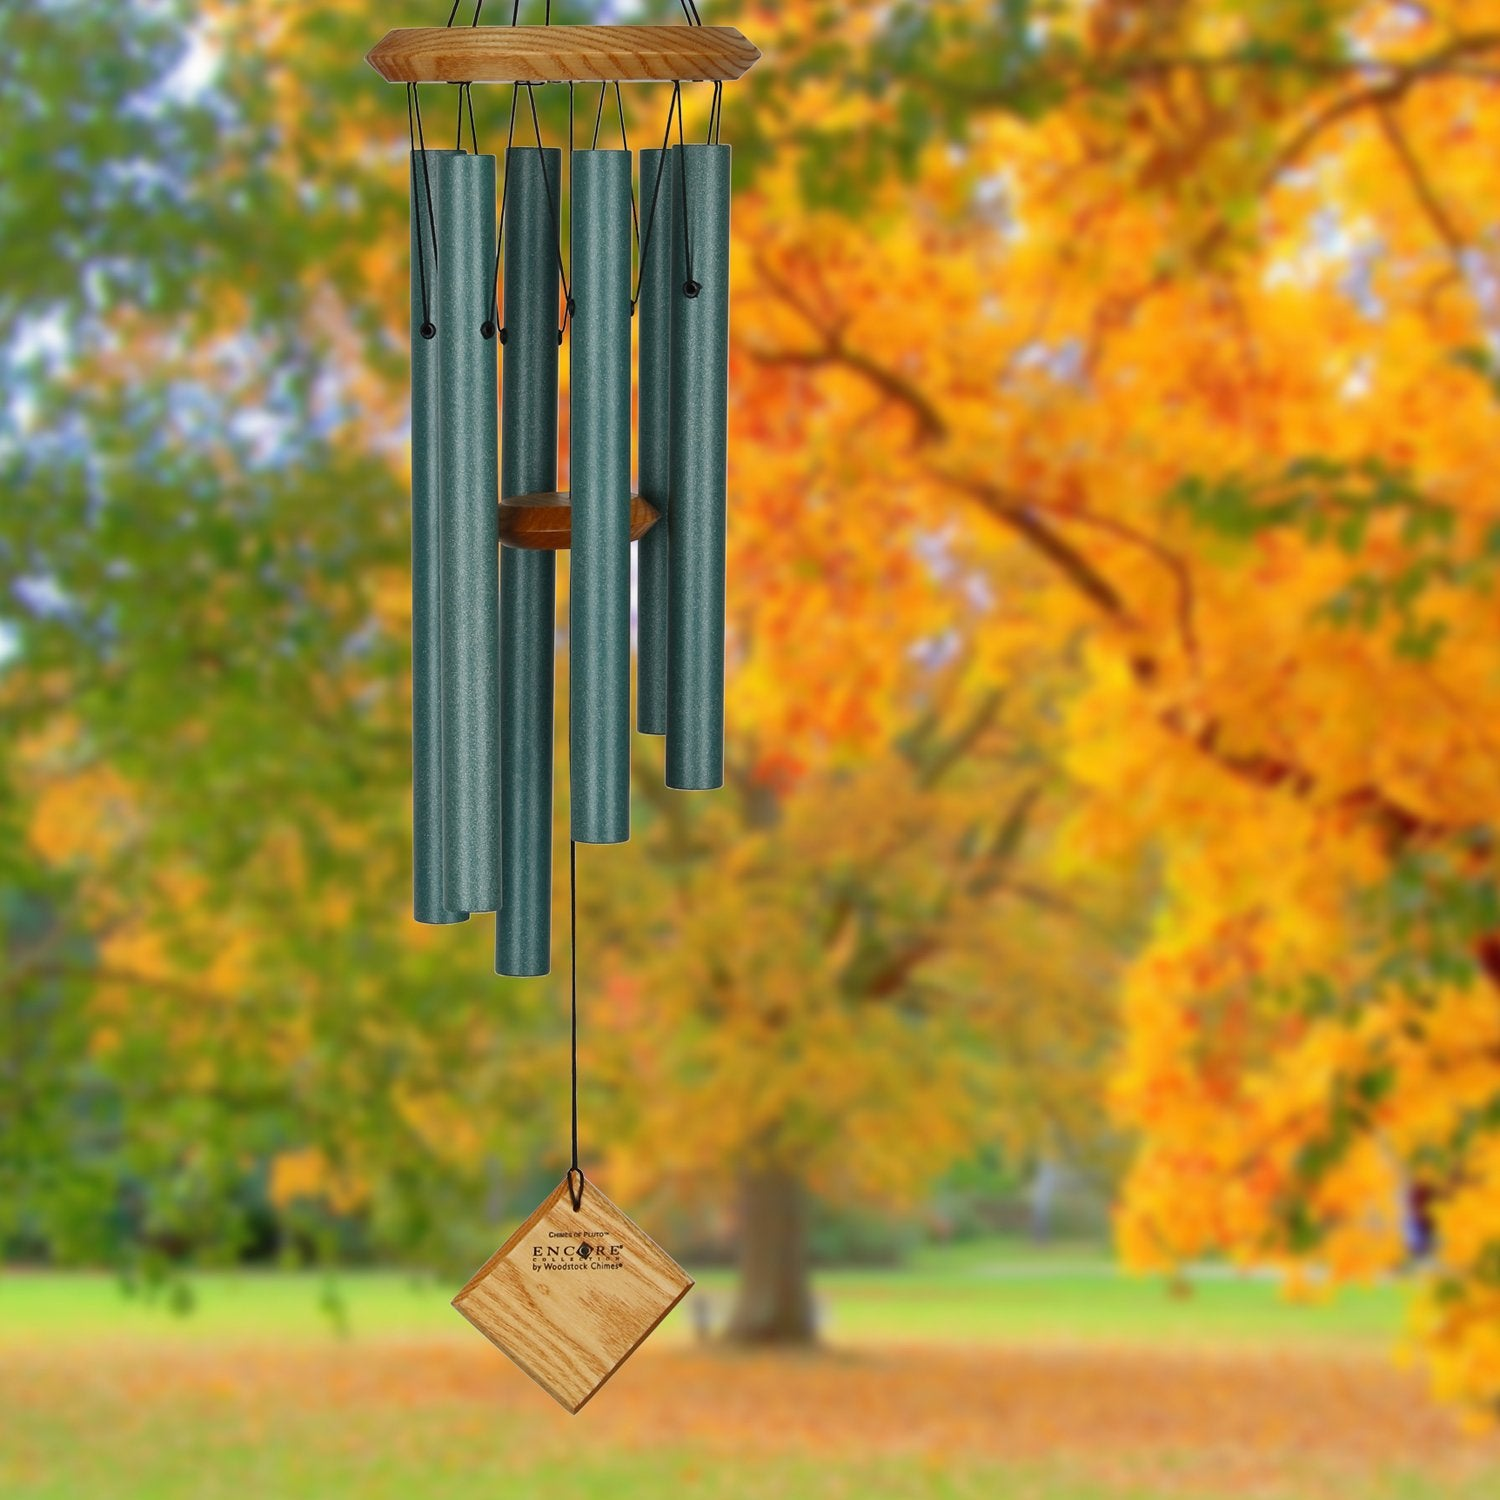 Encore Chimes of Pluto - Verdigris lifestyle image